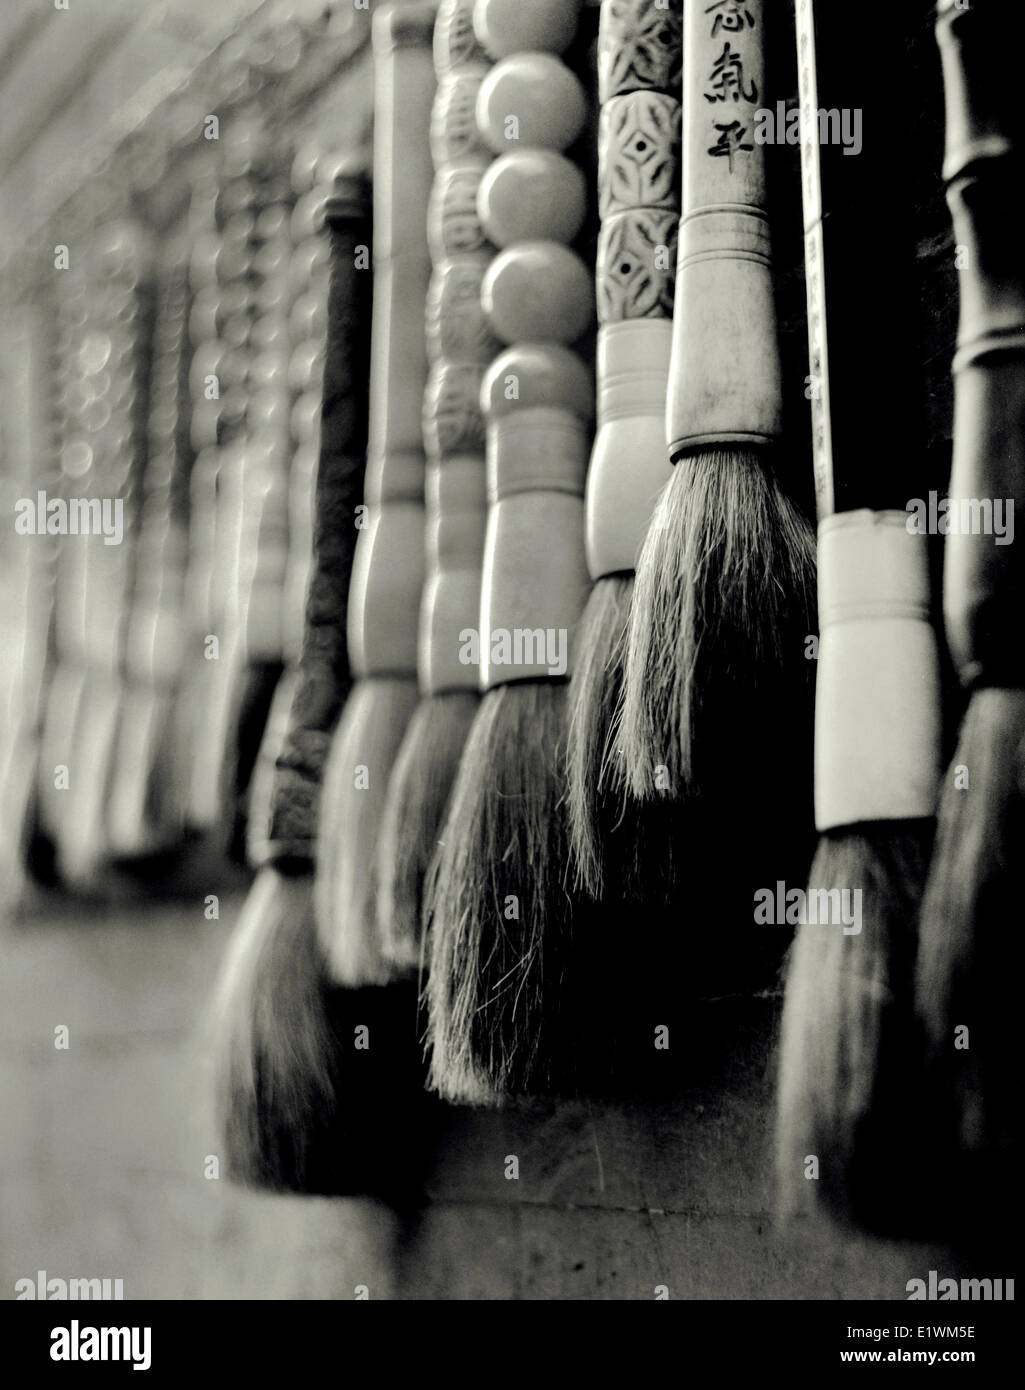 Chinese ink brushes on display on Liulichang street in Beijing - Stock Image